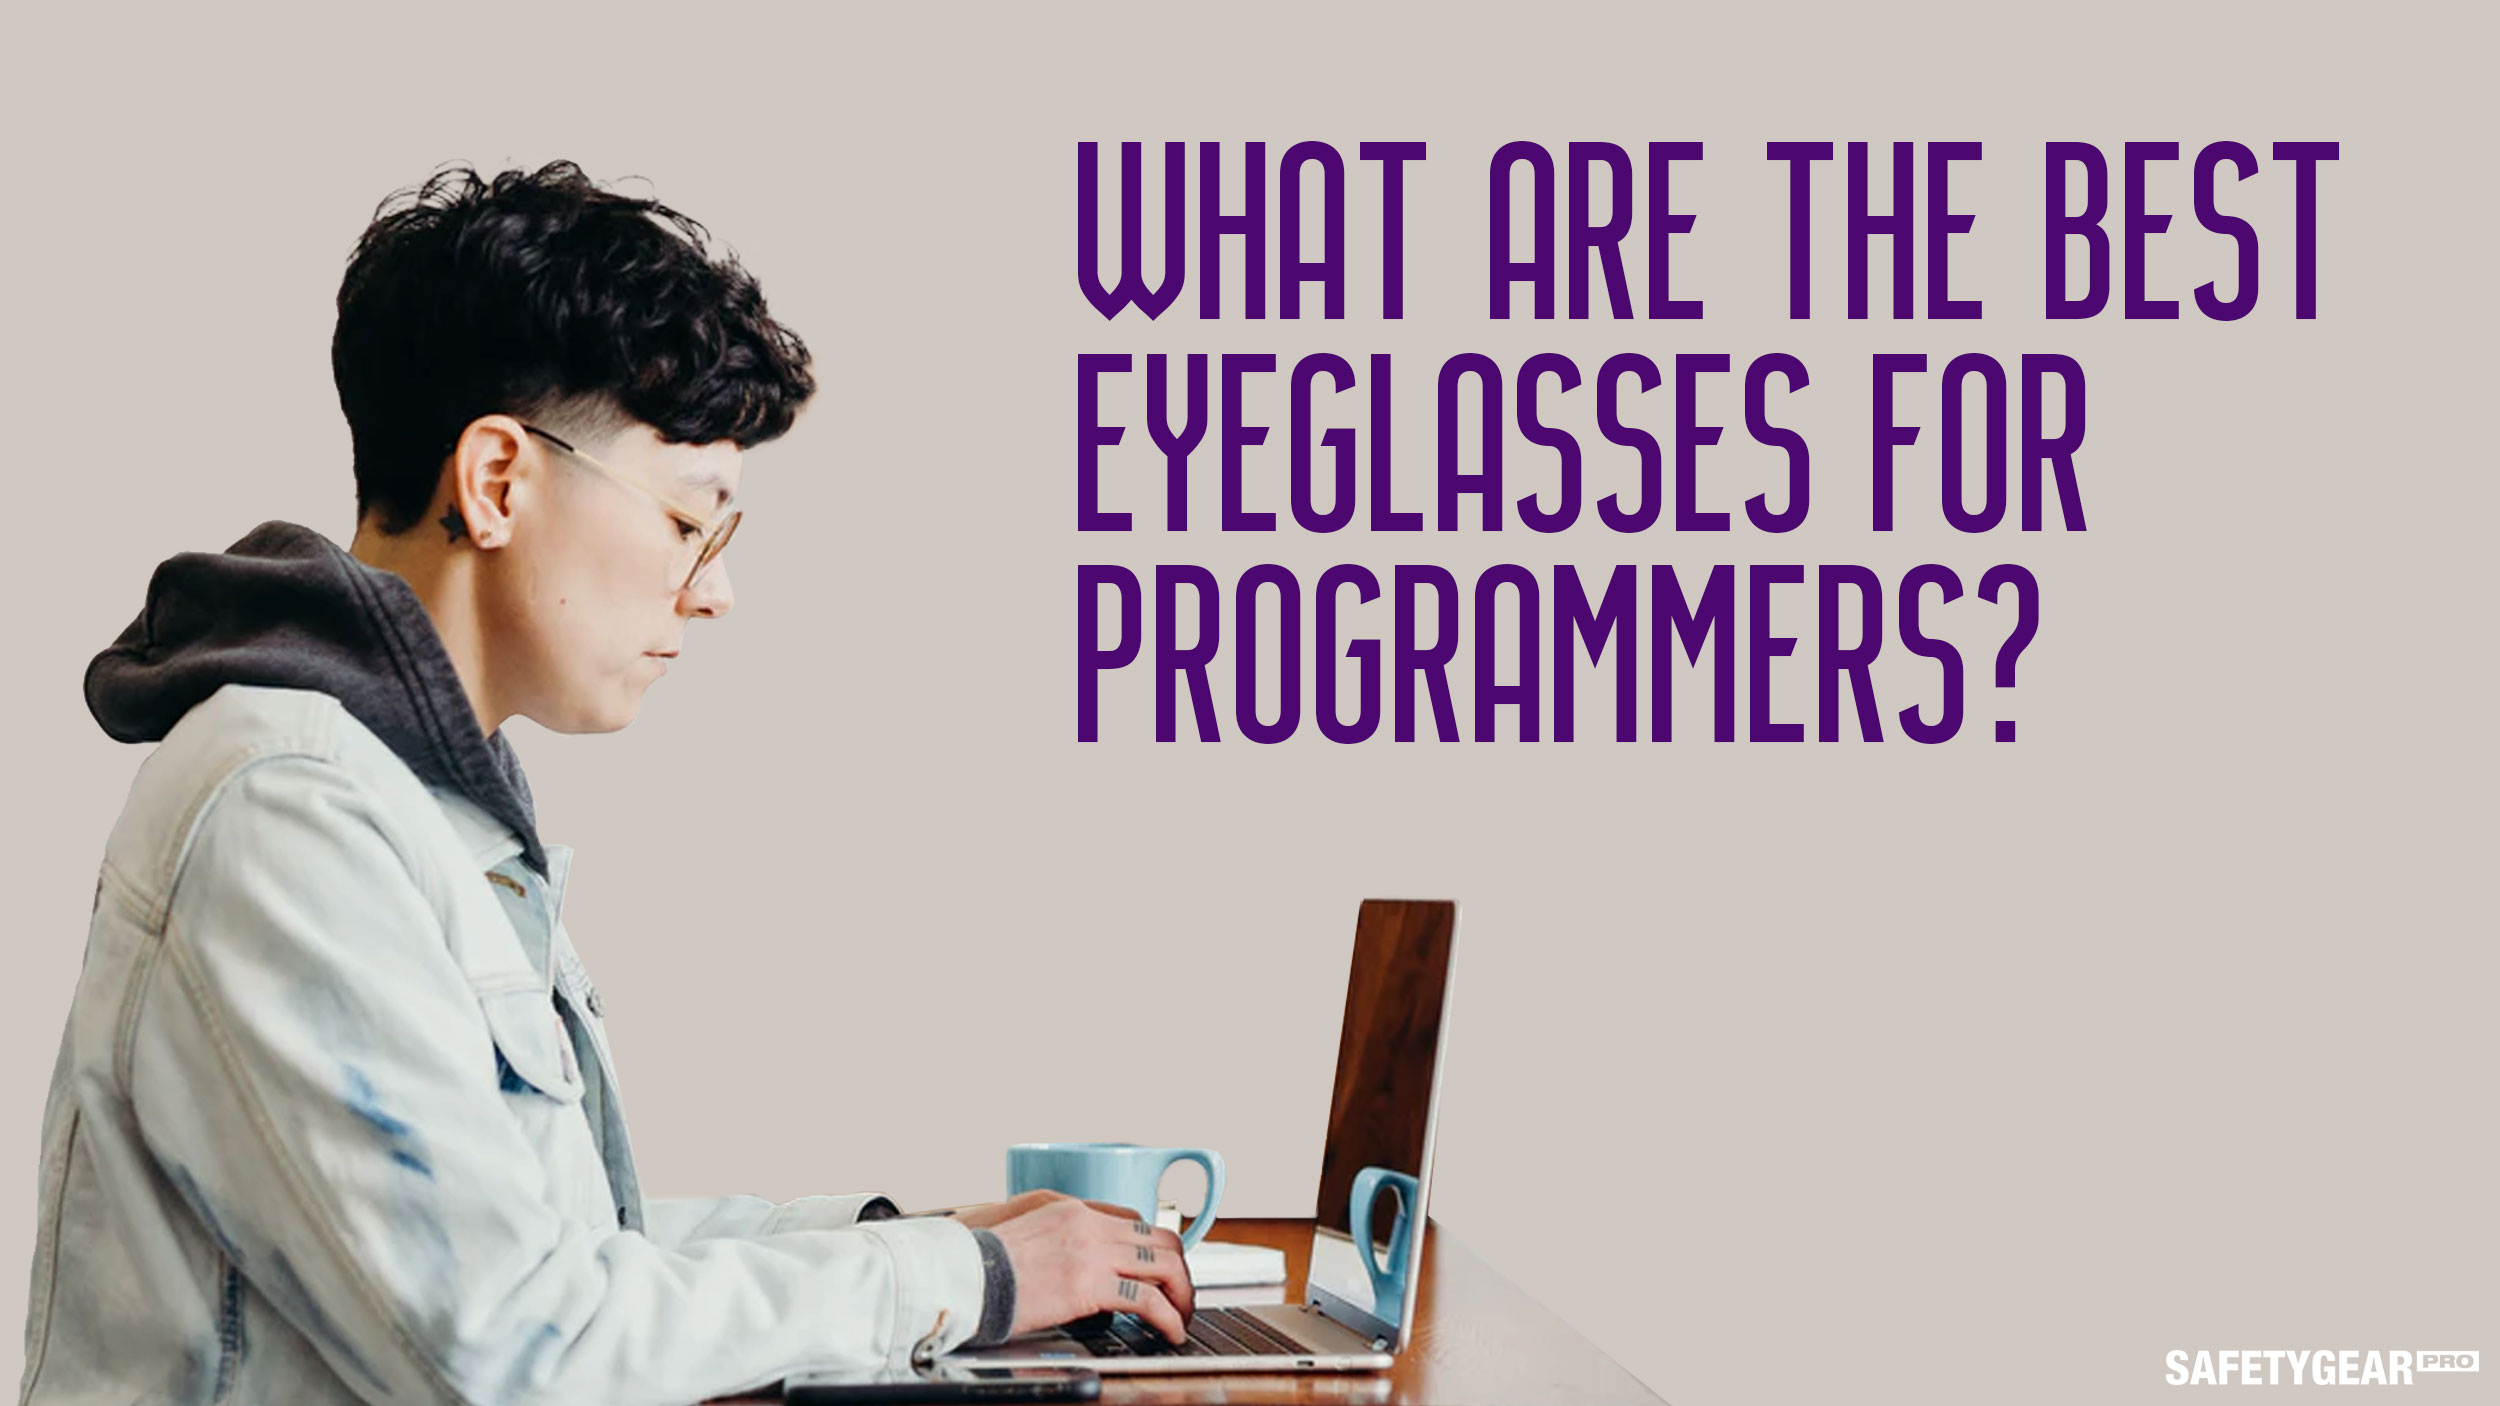 what are the best eyeglasses for programmers?